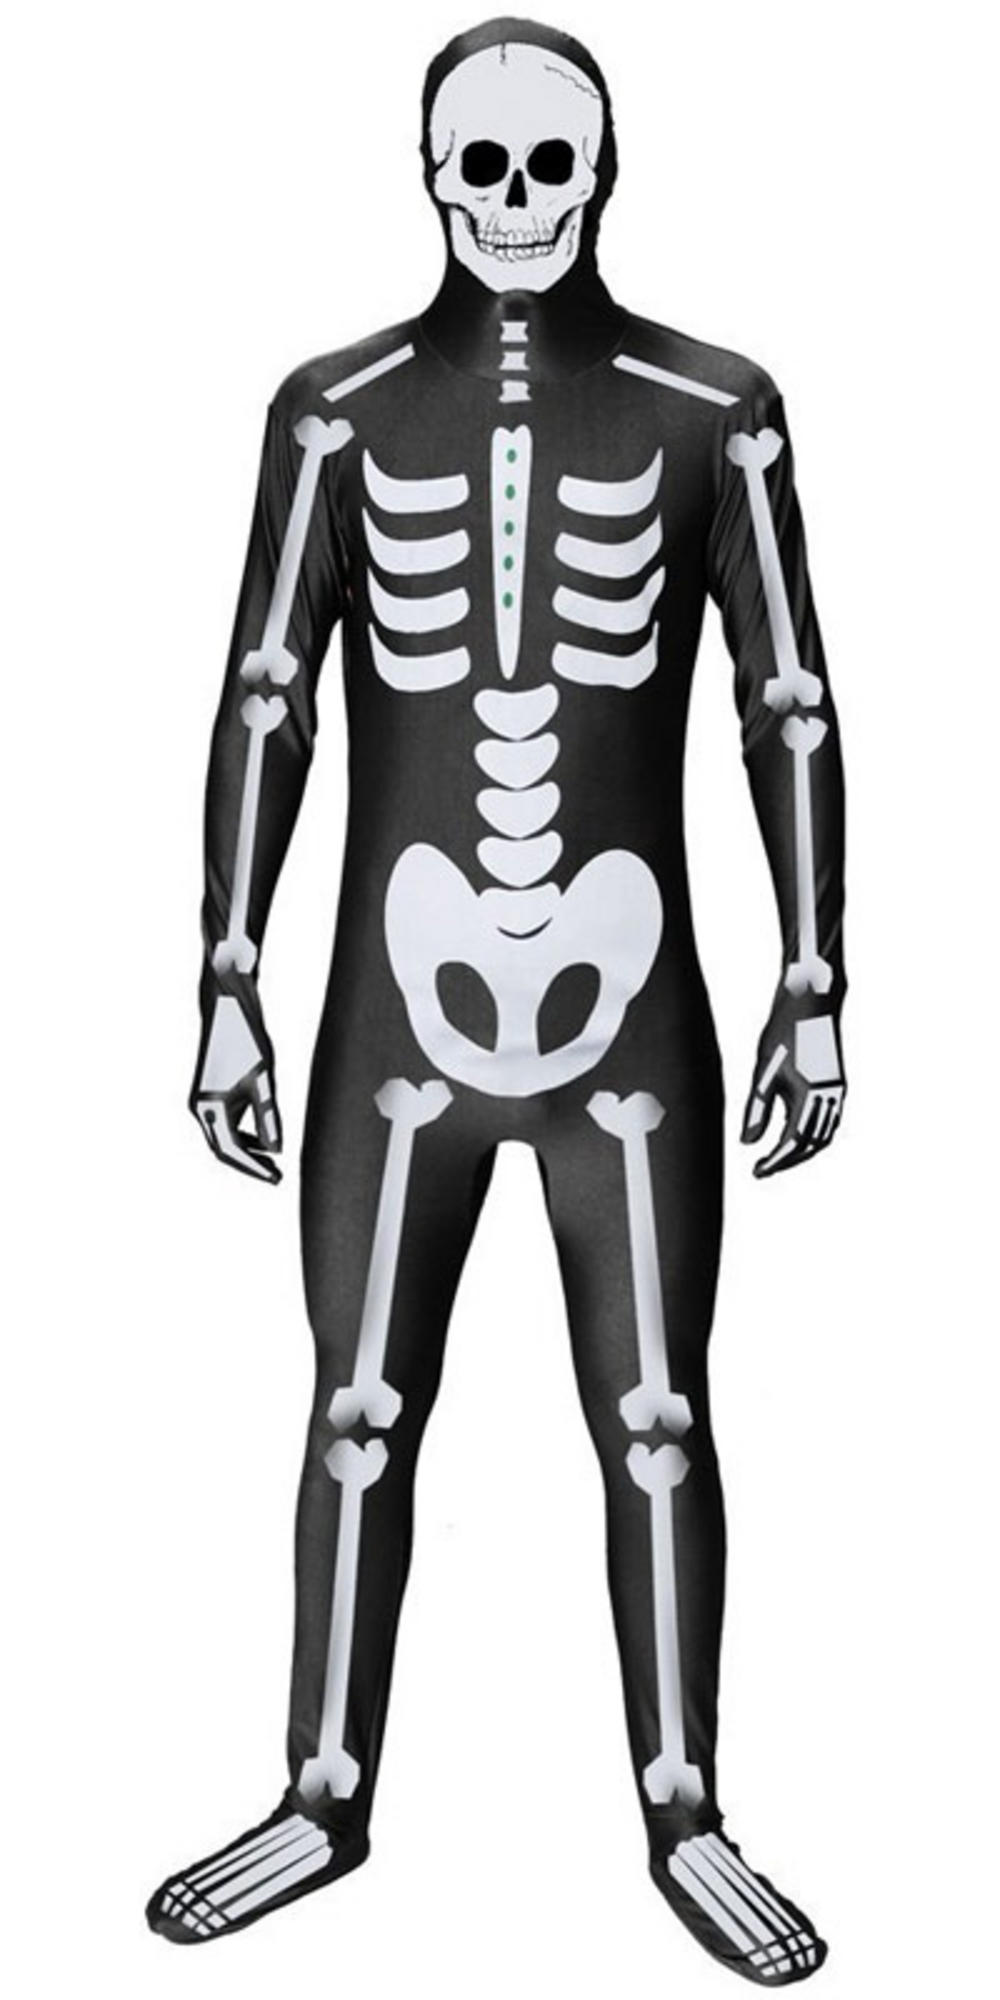 Adult Skeleton Body Suit Fancy Dress Party Costume